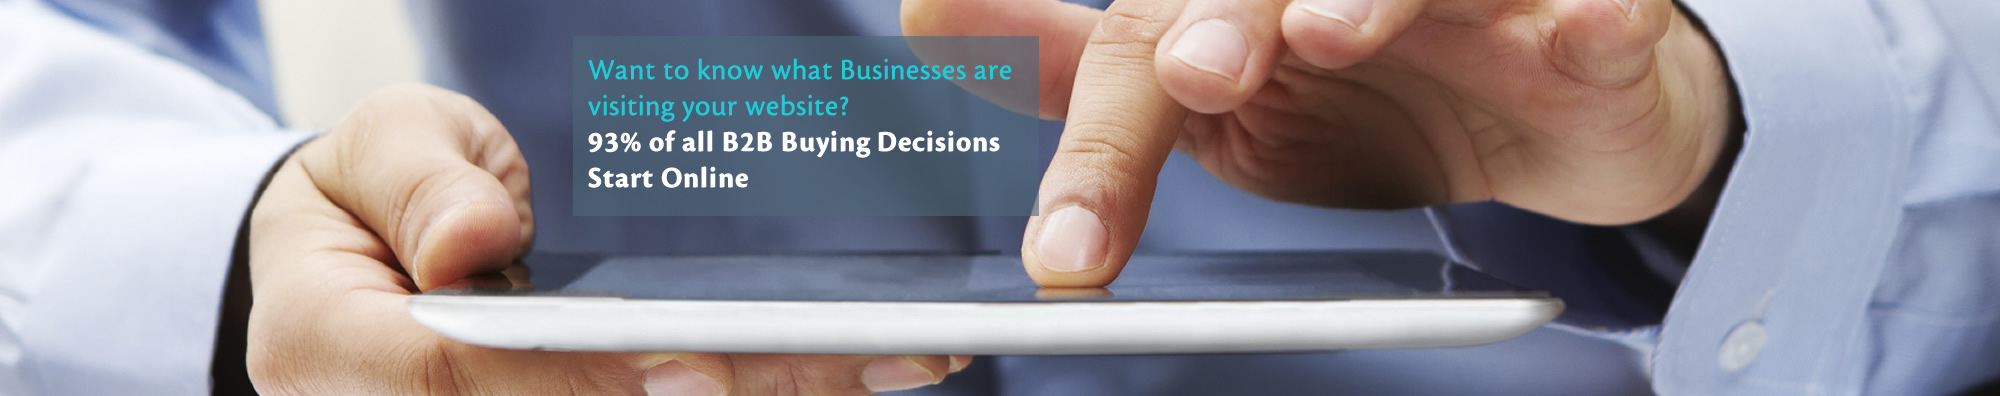 Want to know what Businesses are visiting your website? 93% of all B2B Buying Decisions Start Online